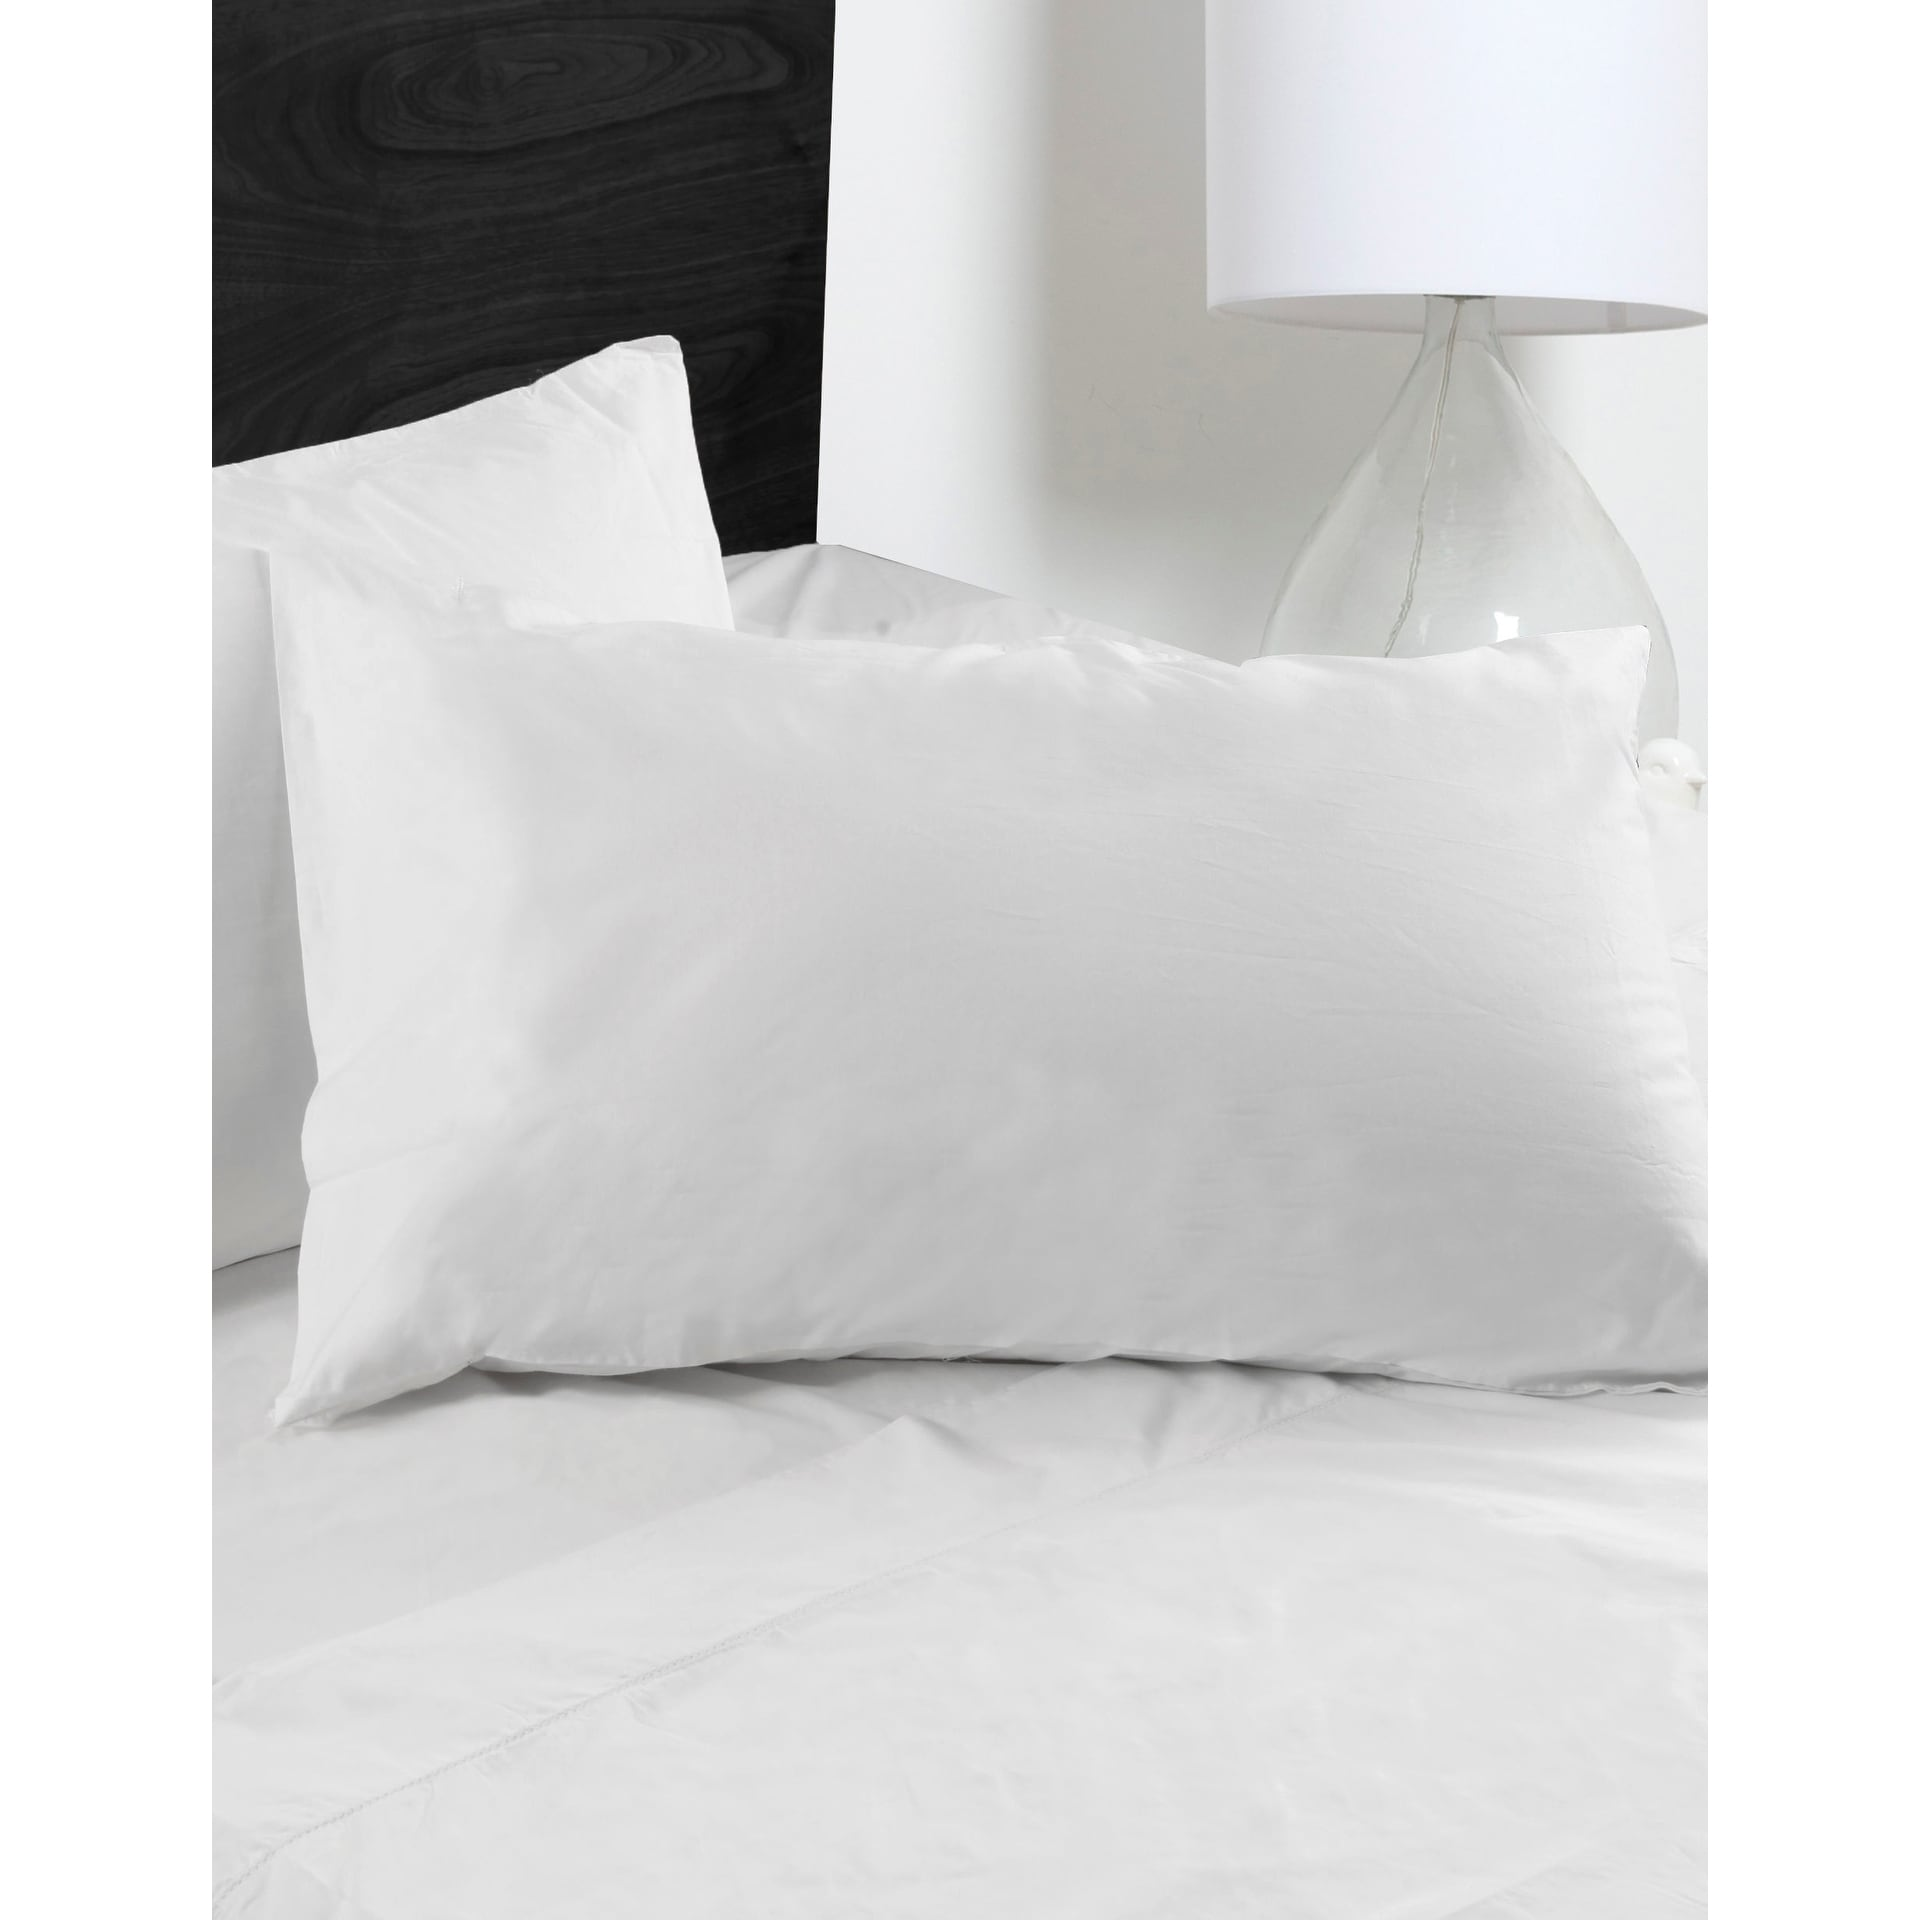 Standard Bed Pillows Studio 707 Microfiber Standard Bed Pillow 18x25 In